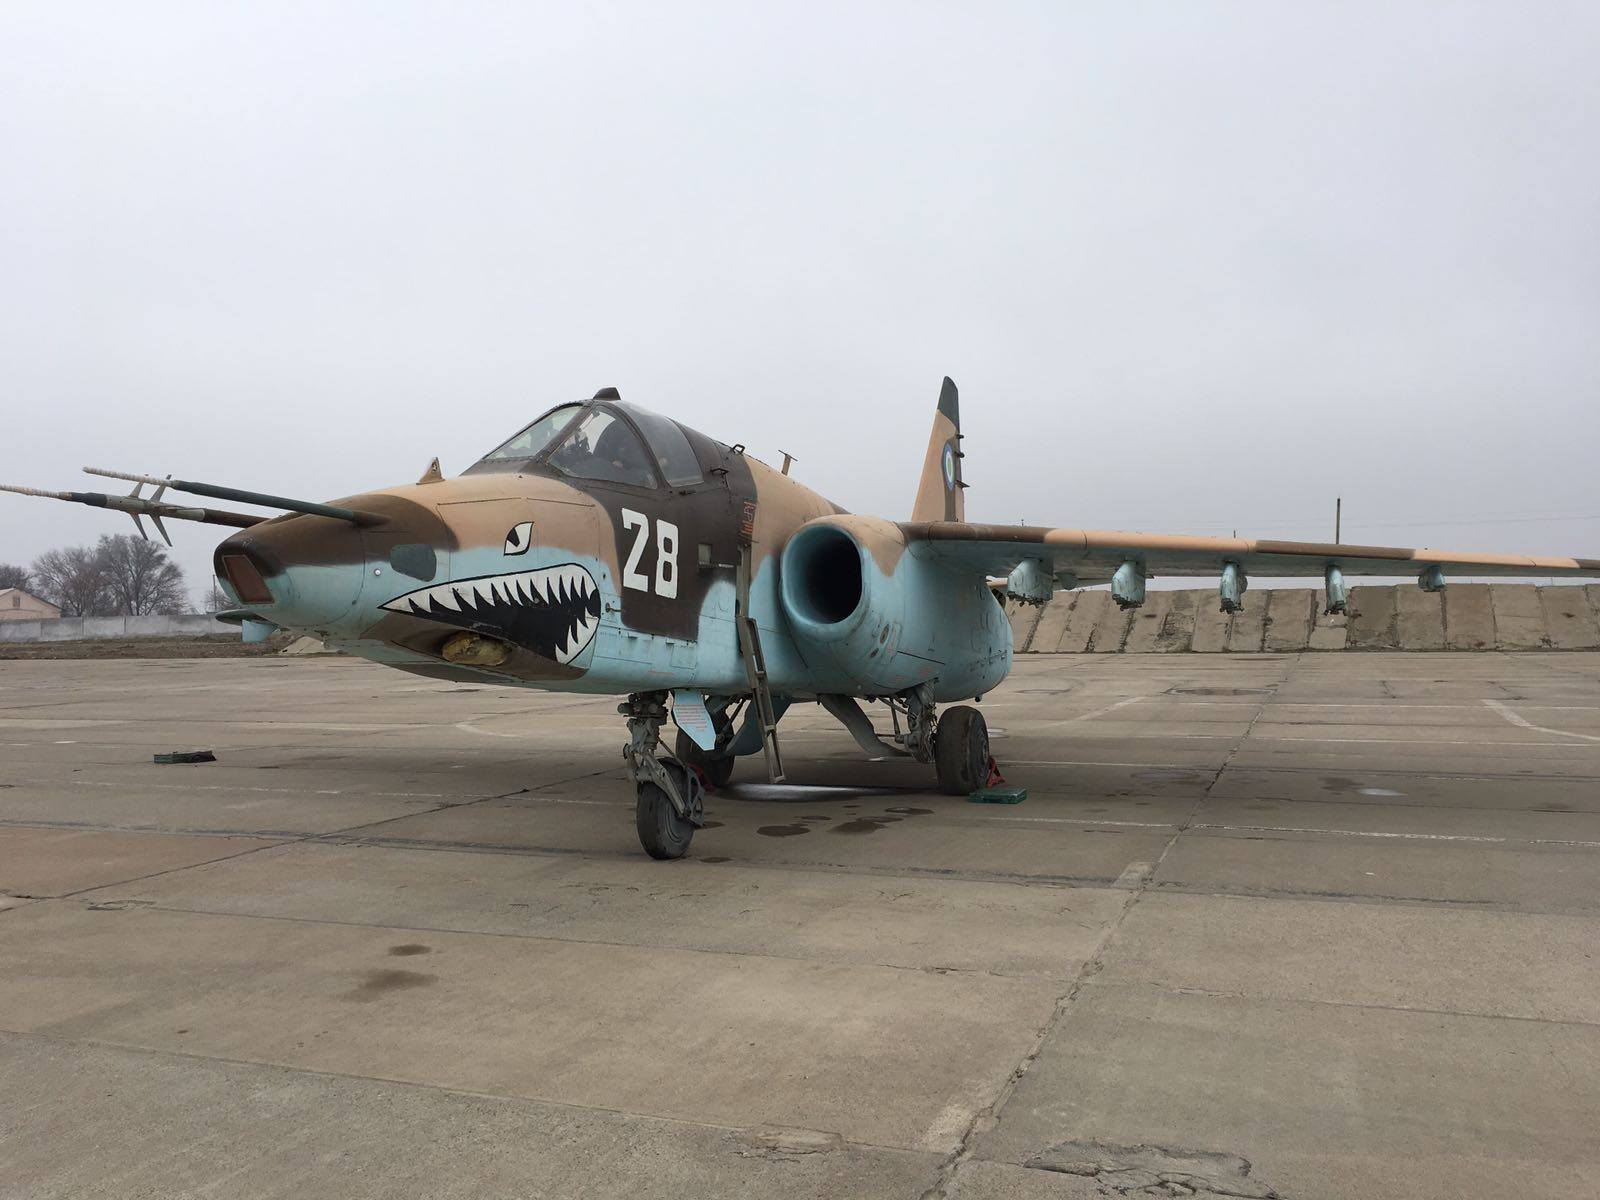 US Company Offers for Sale Warplanes of Uzbek Air Force